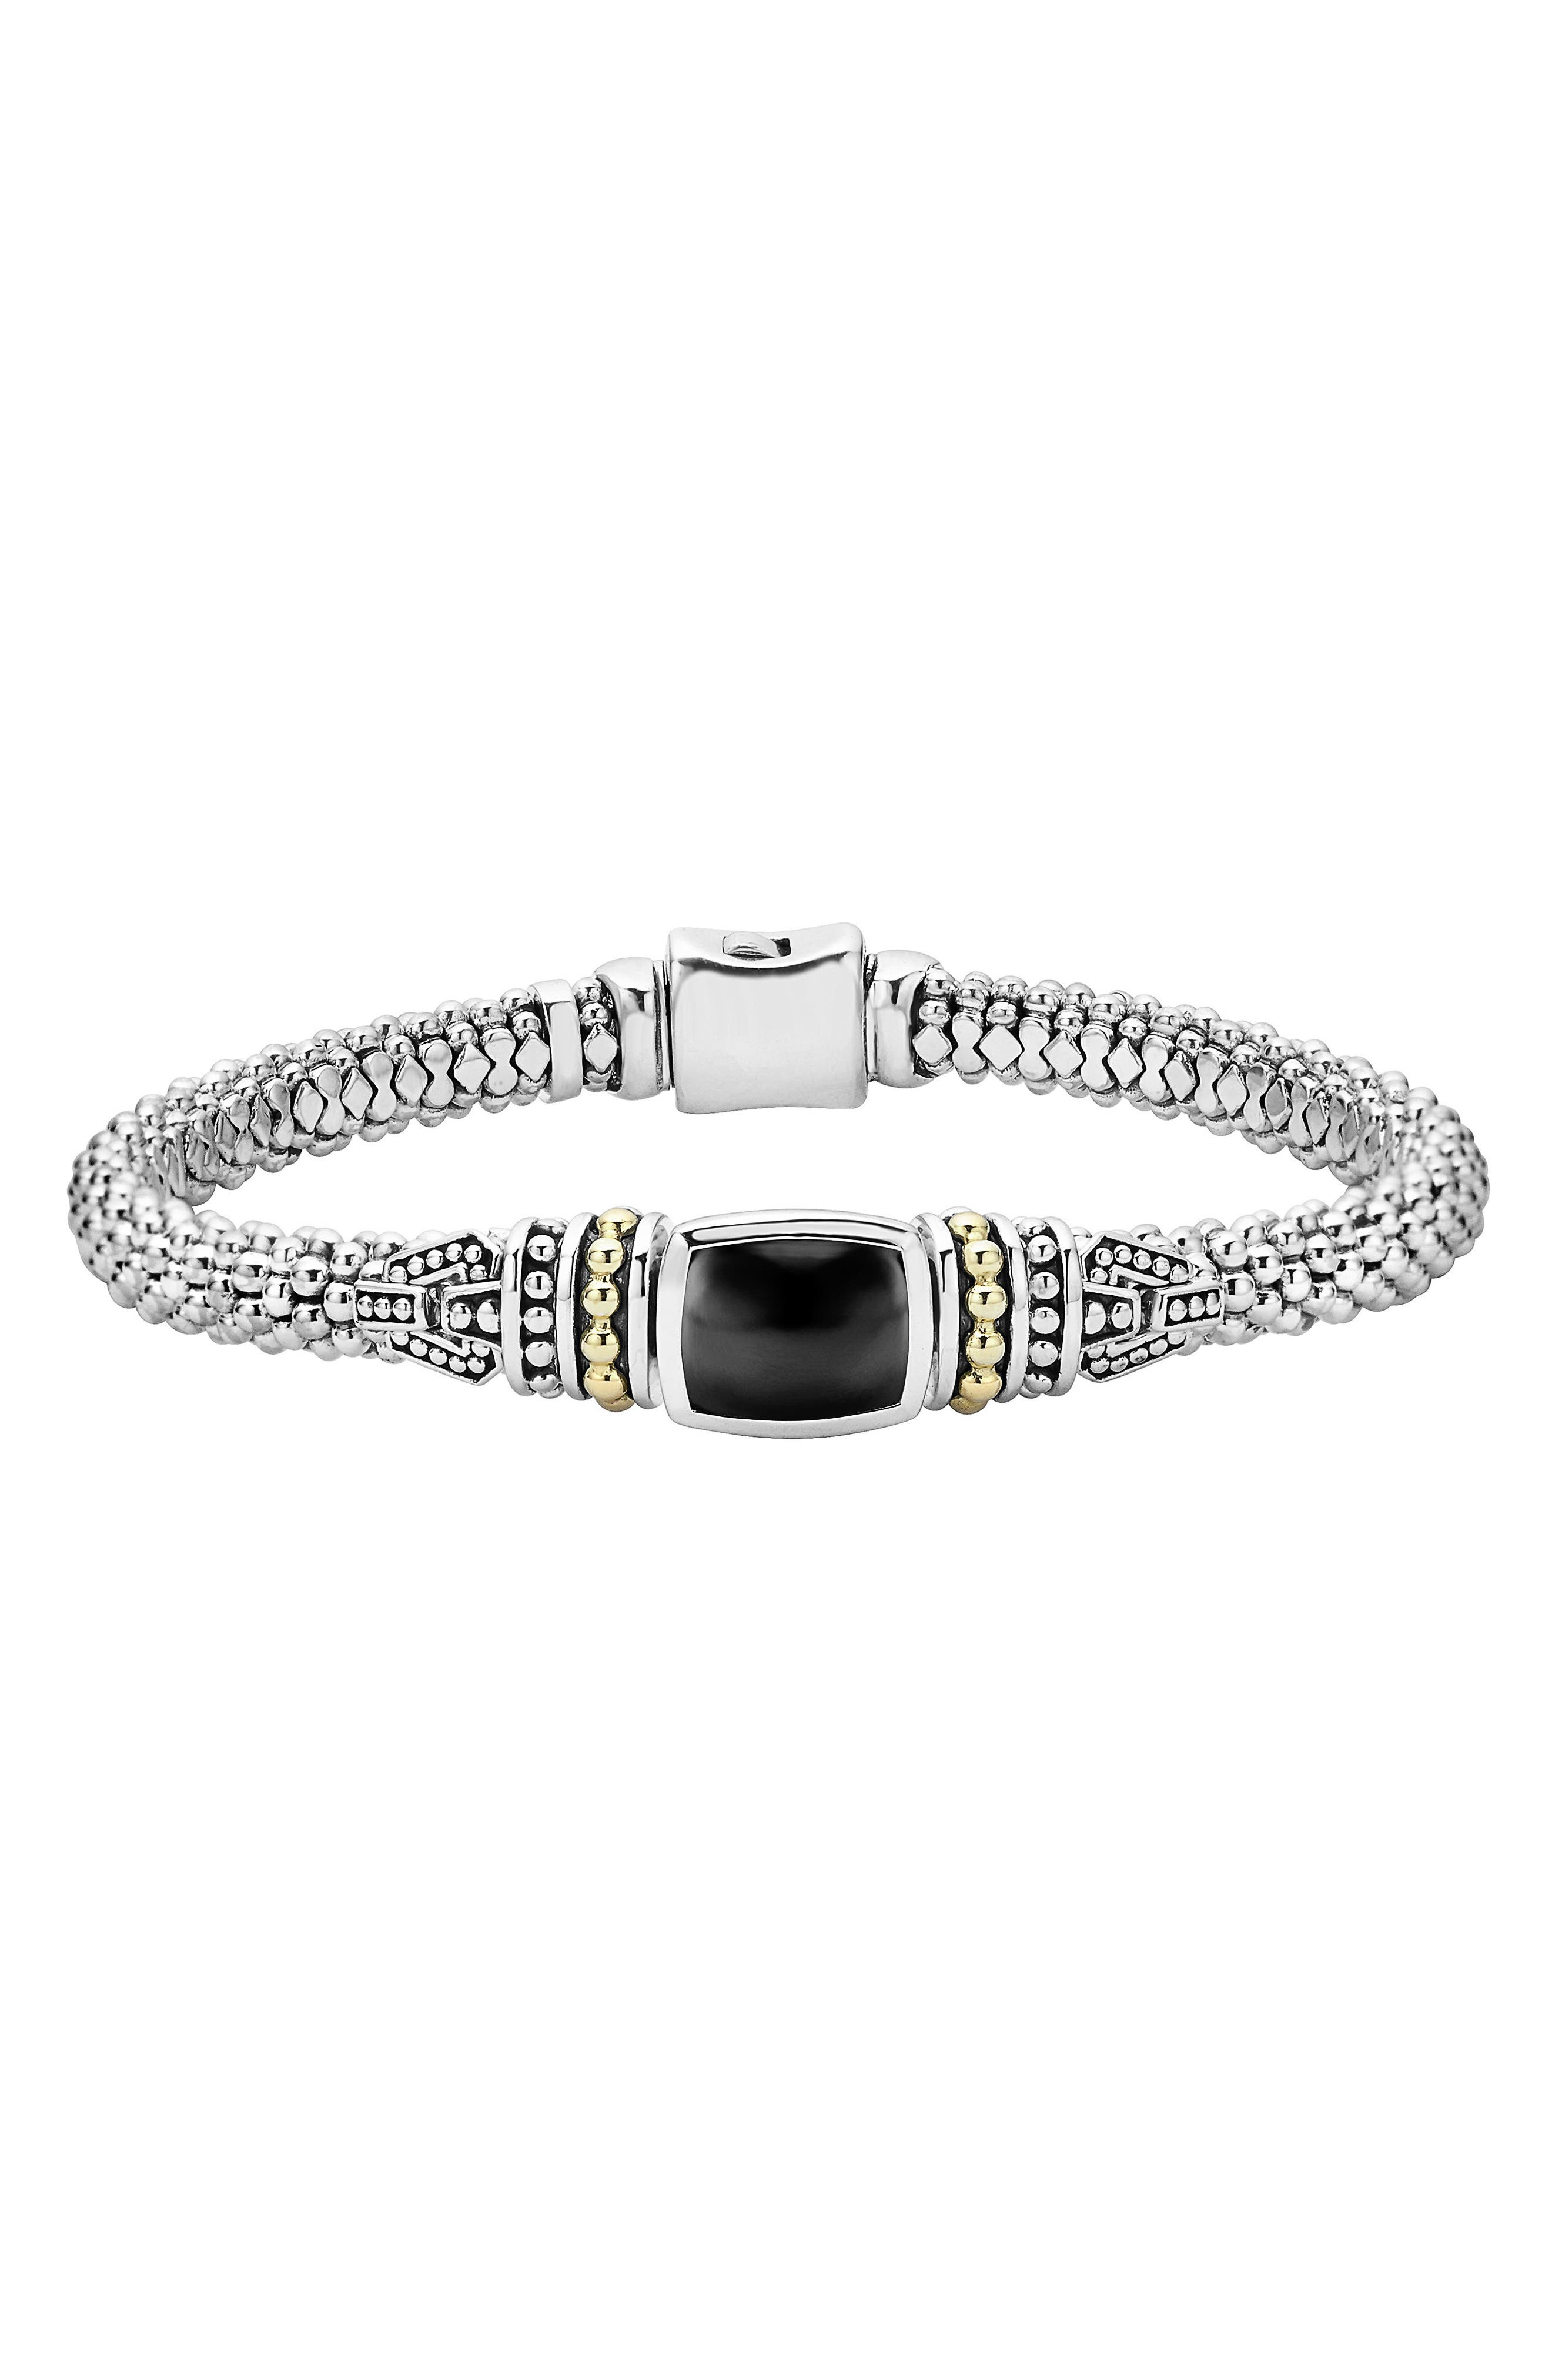 'Caviar Color' Semiprecious Stone Bracelet,                             Main thumbnail 1, color,                             Black Onyx